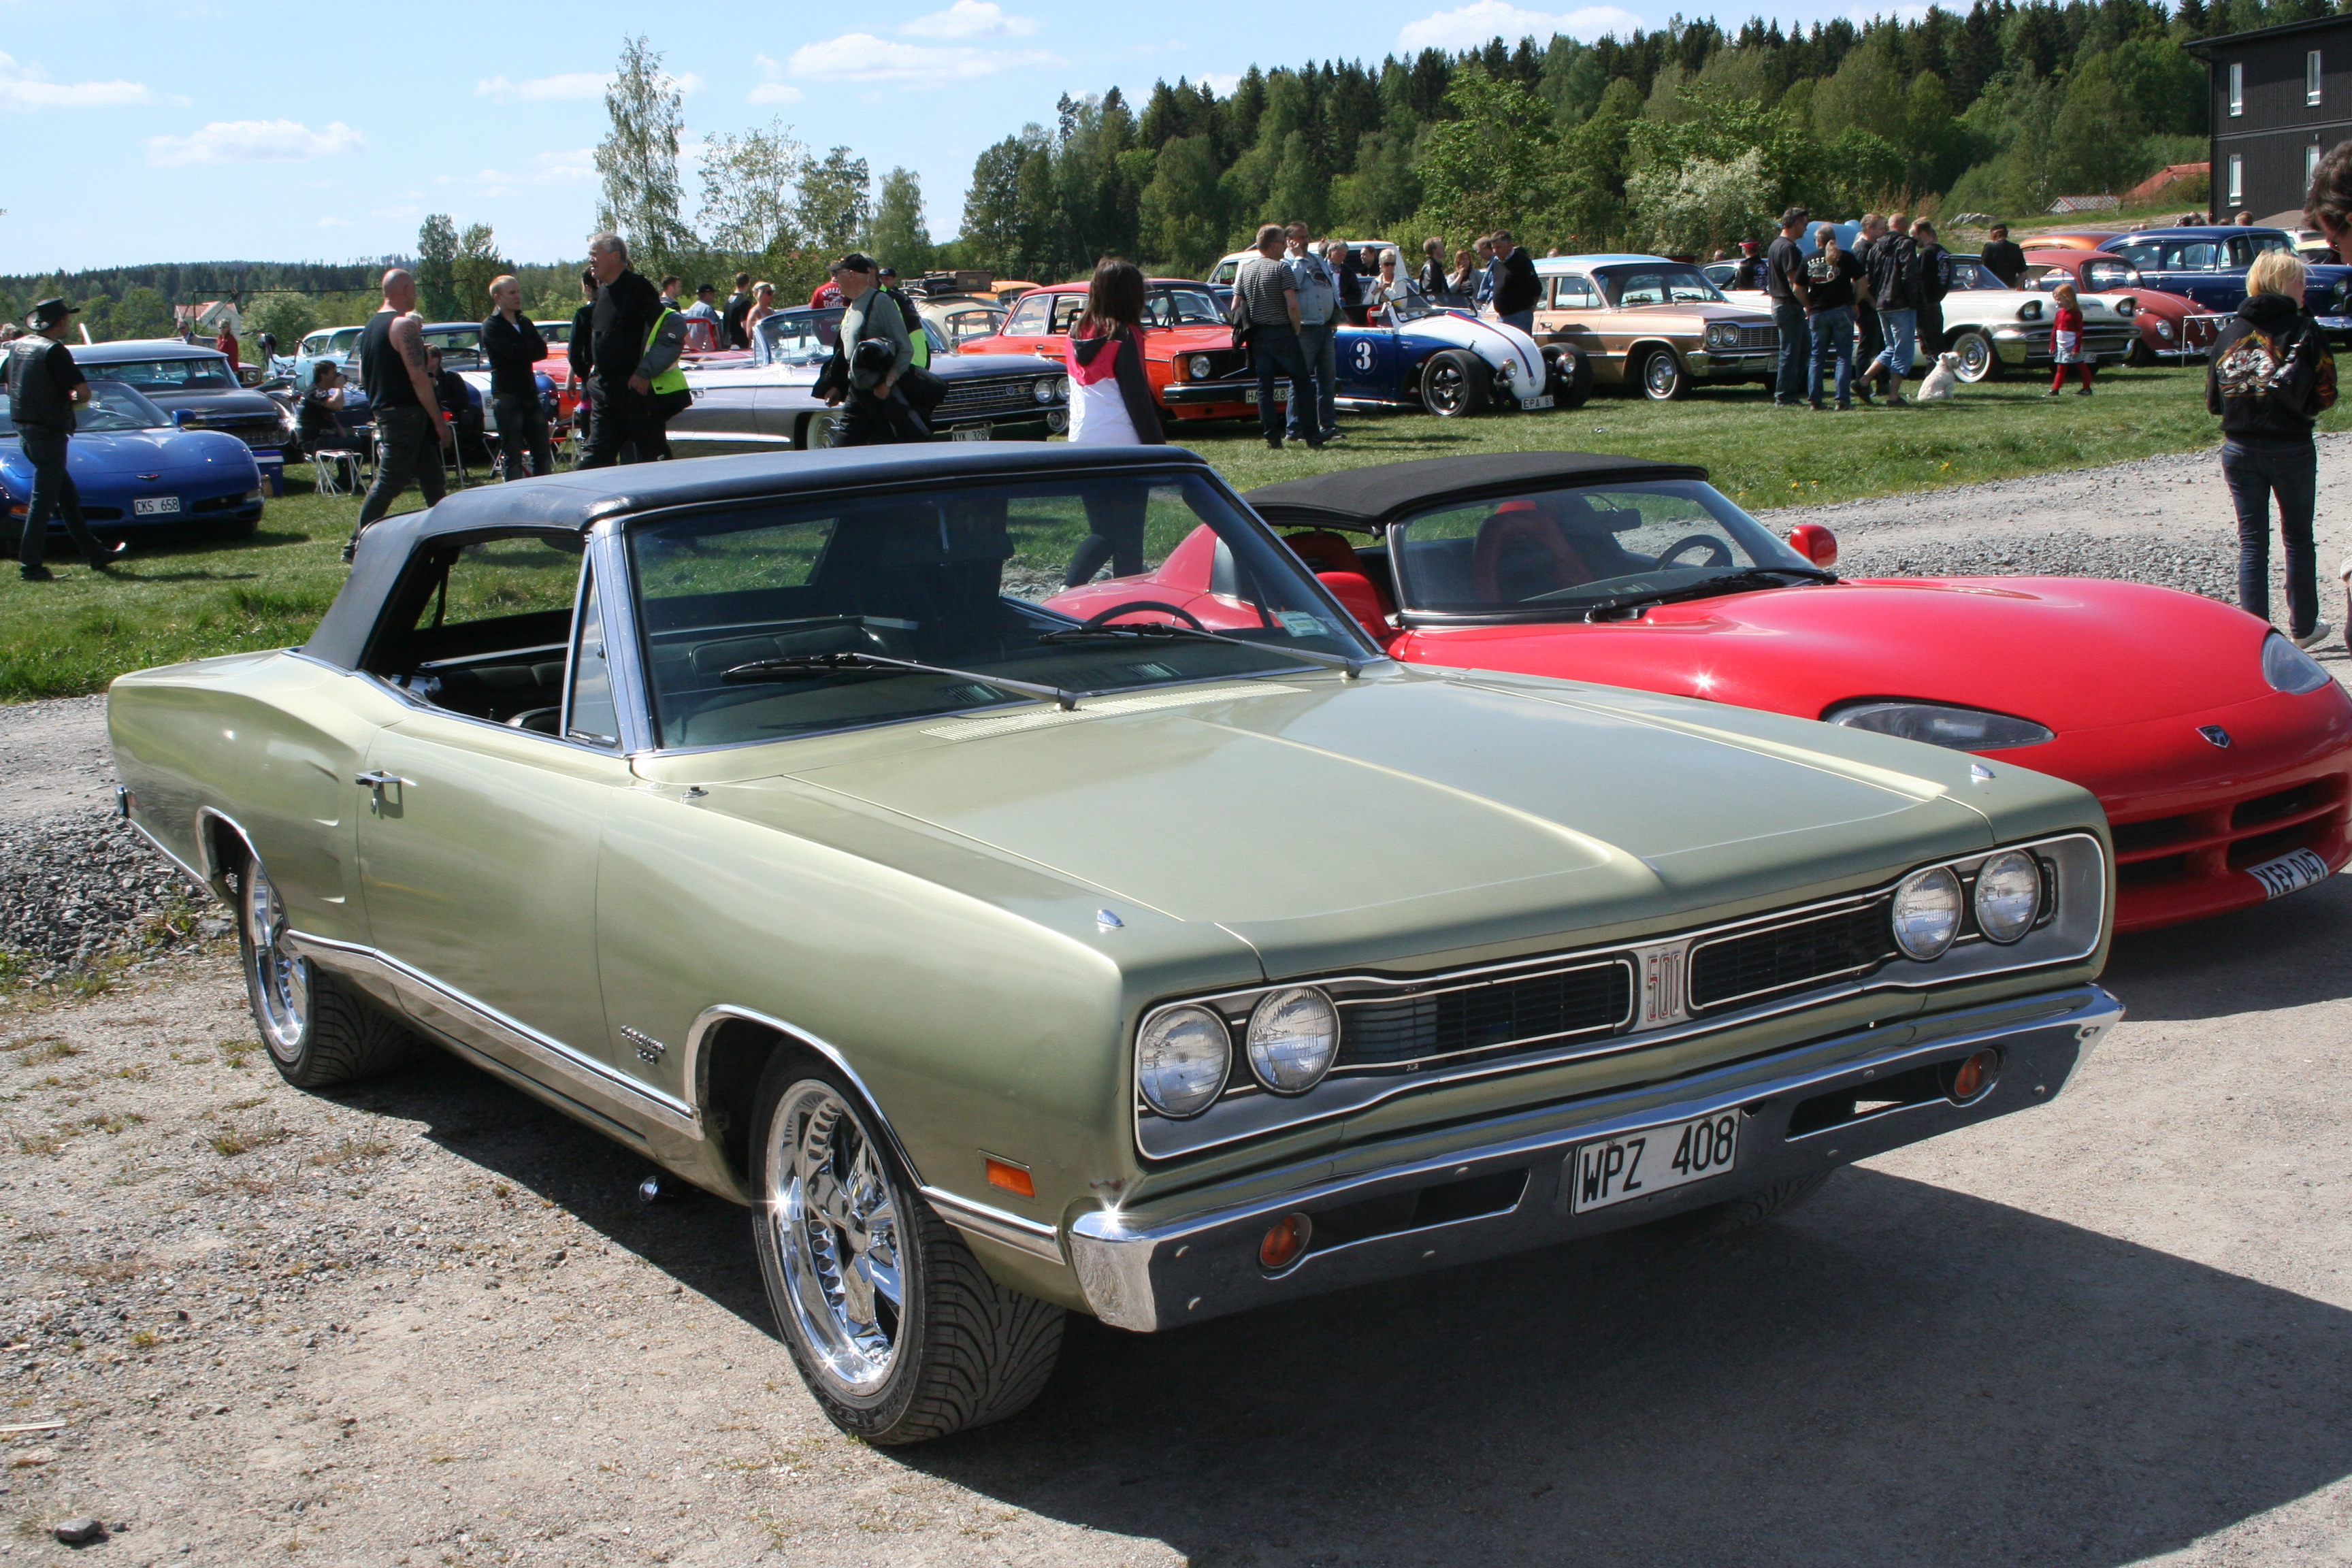 Dodge Coronet 1969 | Flickr - Photo Sharing!